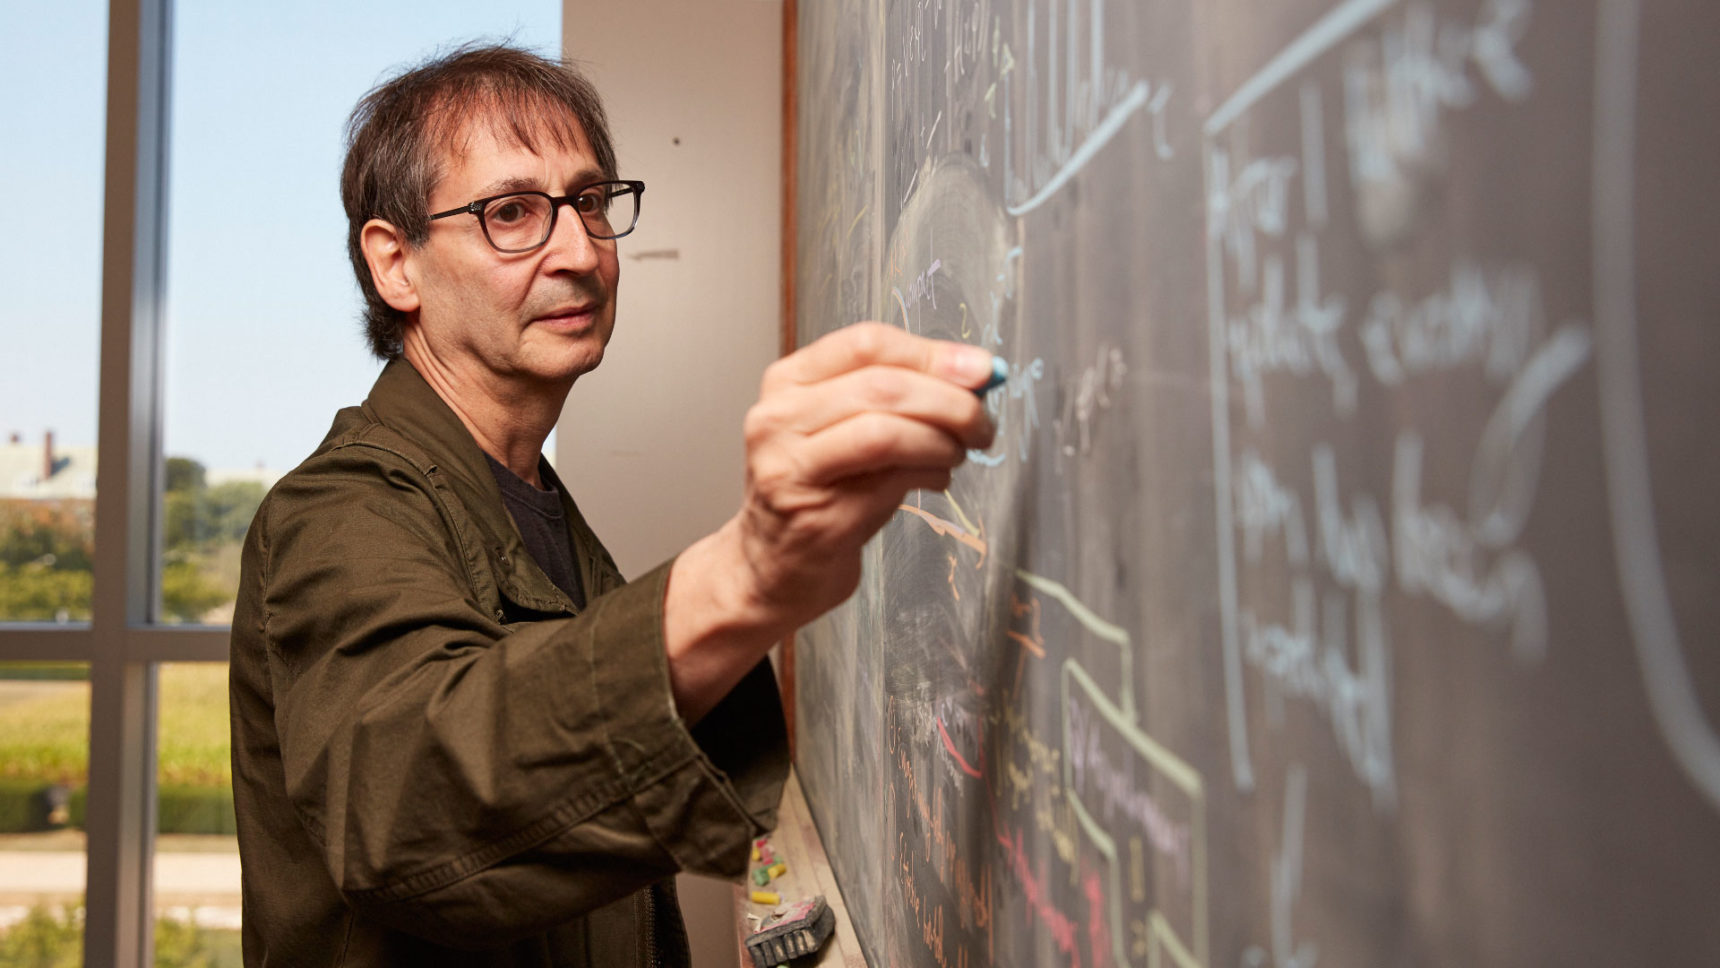 VIDEO: Nigel Goldenfeld explains how condensed matter physics provides insights into the collective state of early life on Earth.